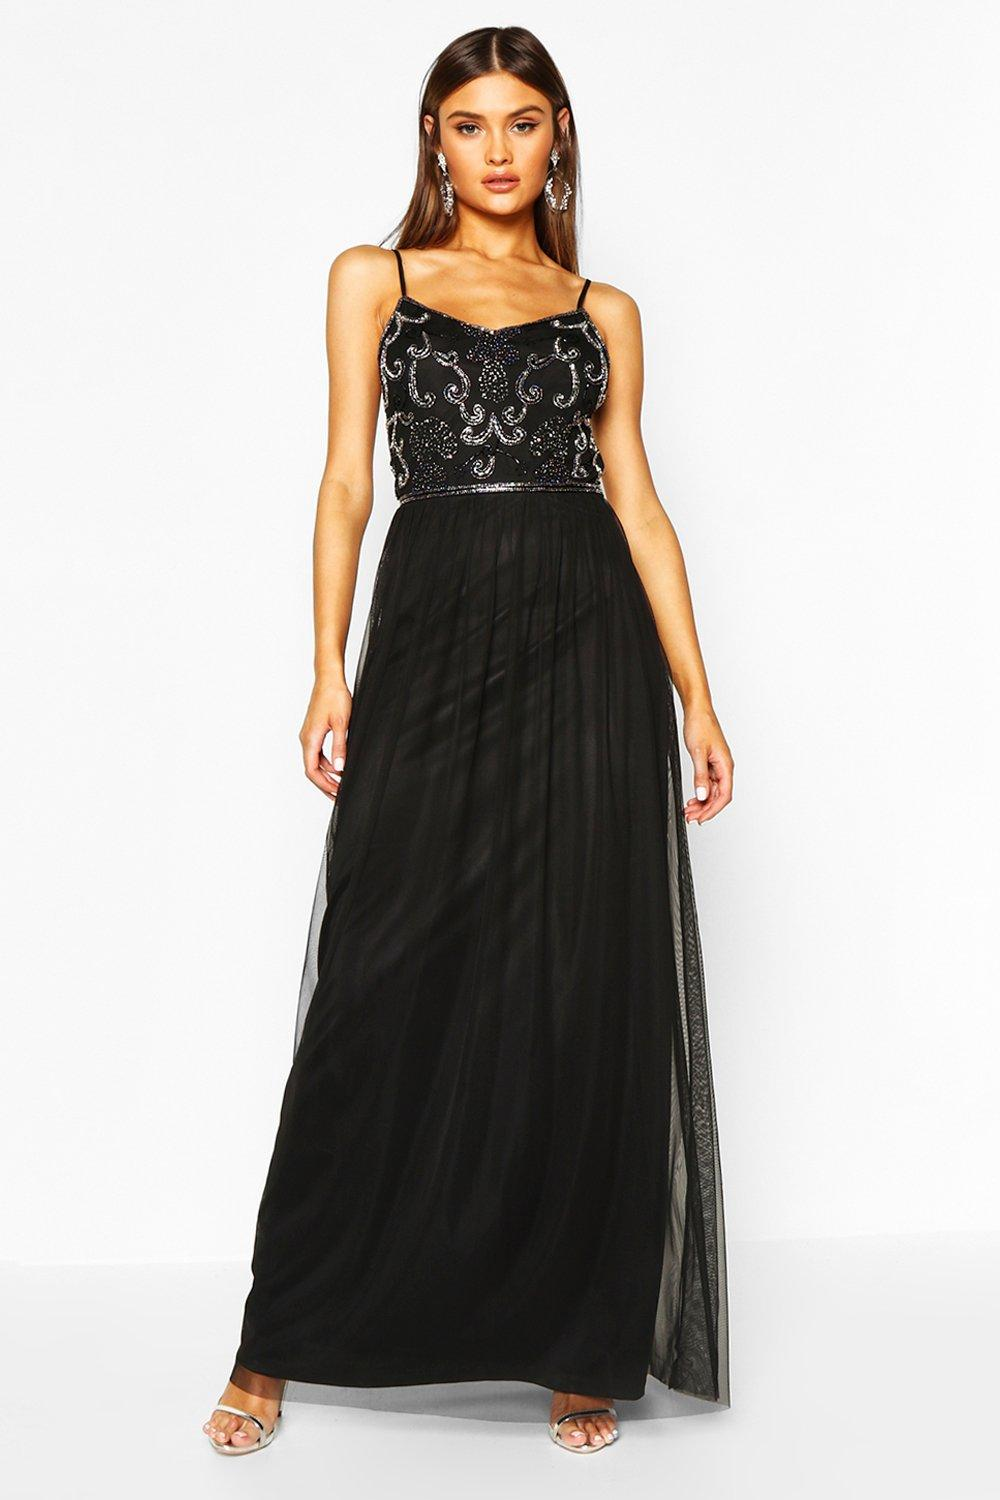 Vintage Evening Dresses and Formal Evening Gowns Womens Boutique Embellished Prom Maxi Dress - Black - 8 $12.00 AT vintagedancer.com